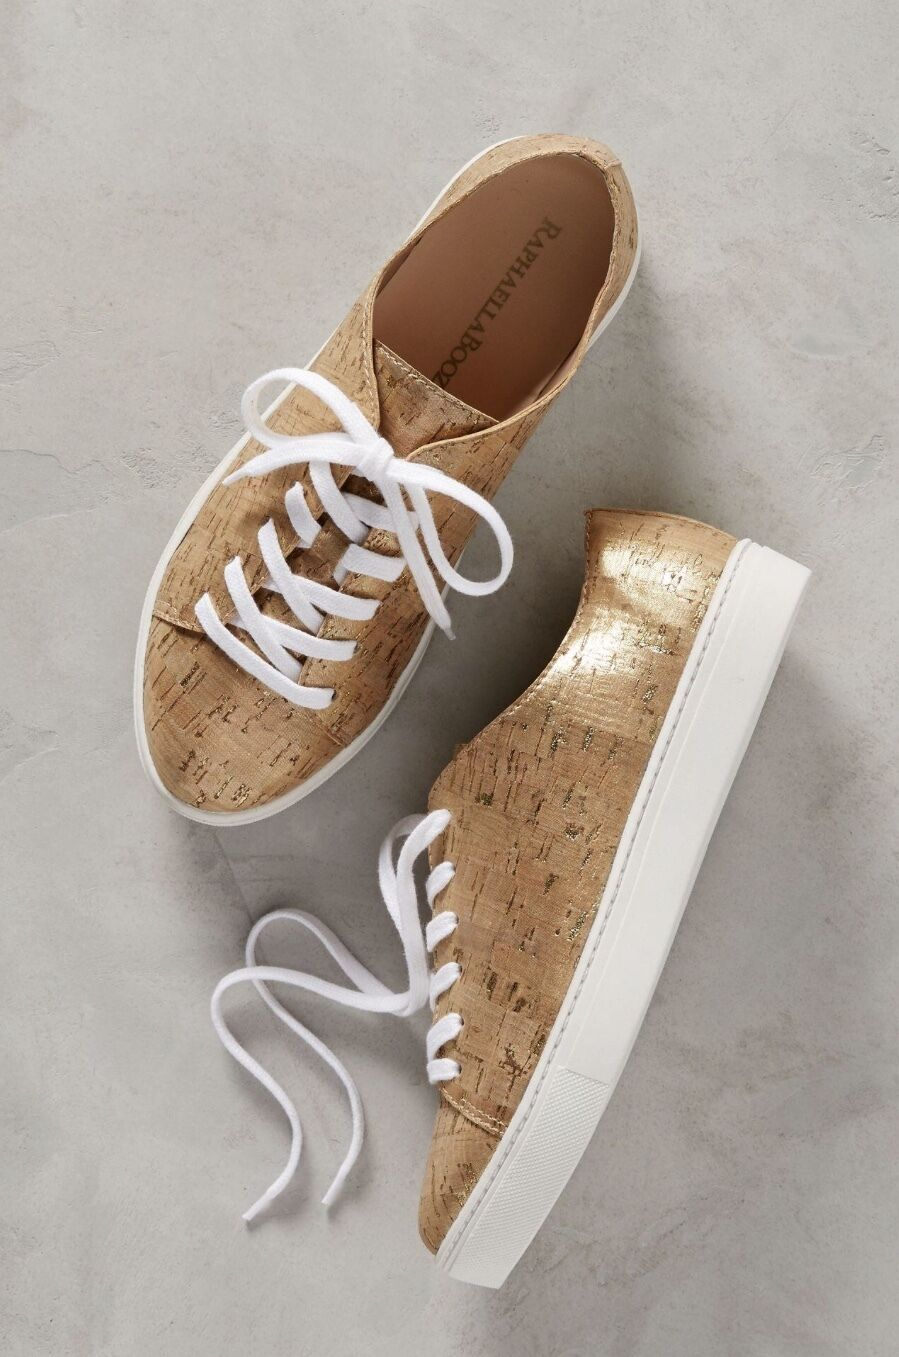 NIB Raphaella Booz gold Metallic Cork Lace Up Sneakers 8